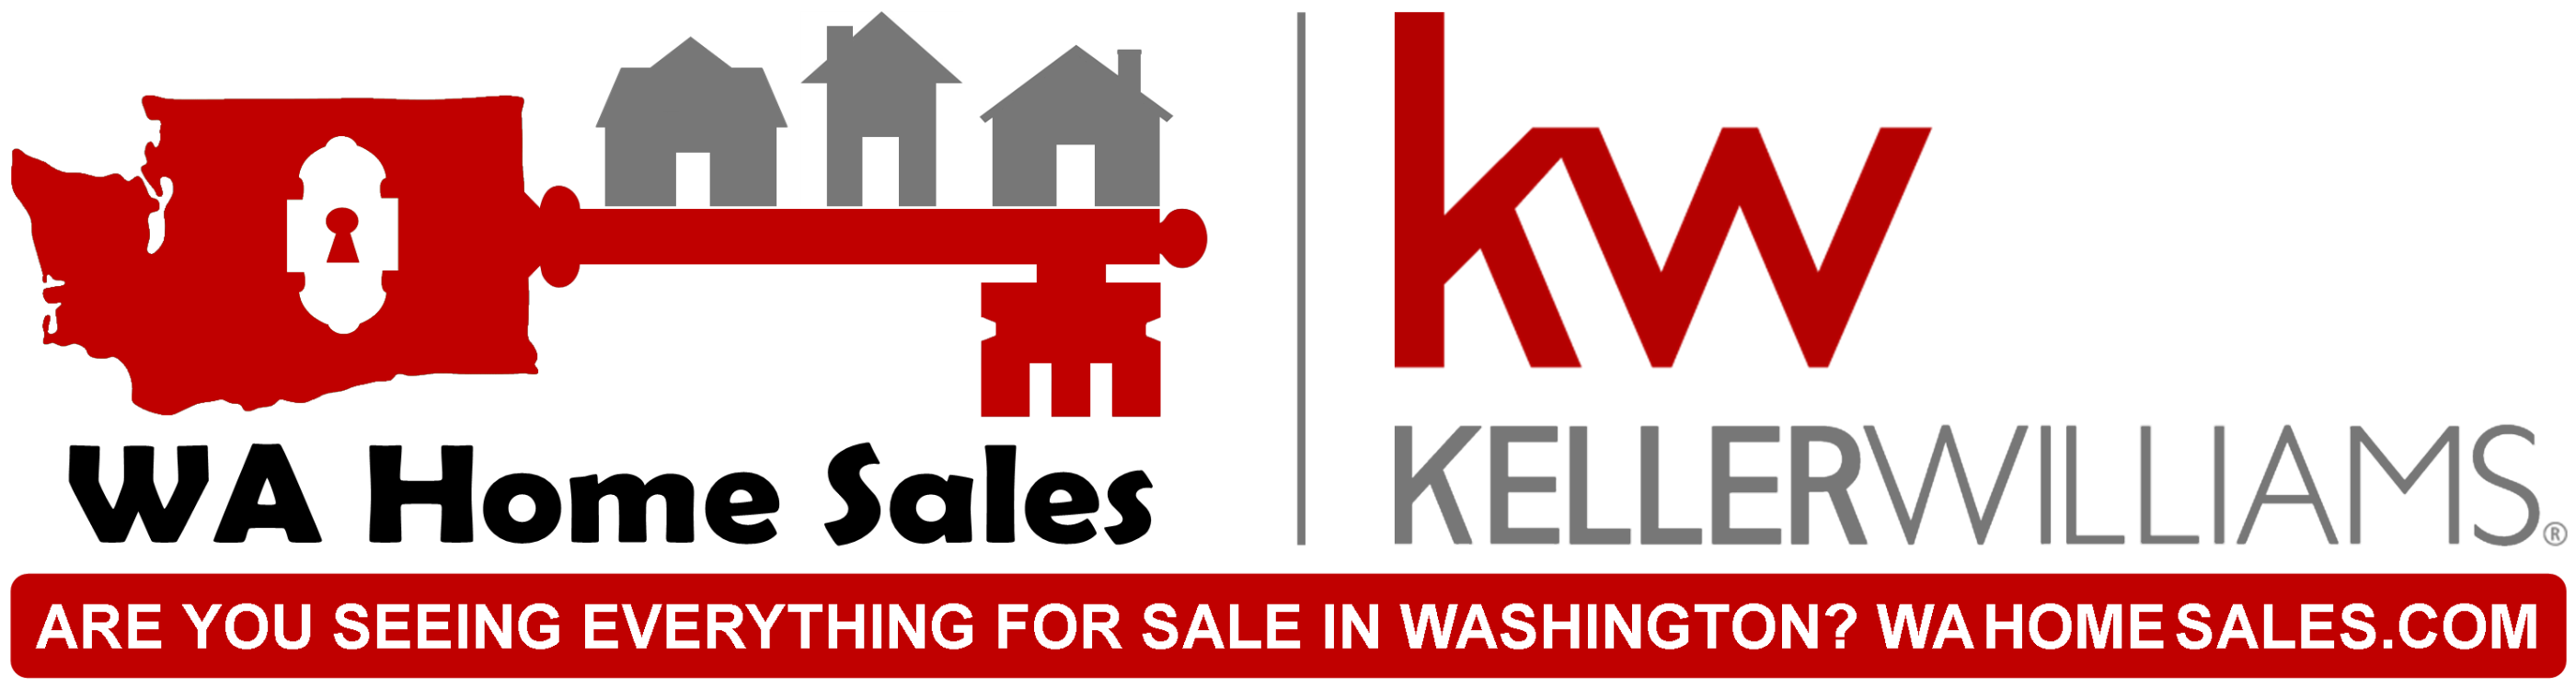 Washington Home Sales